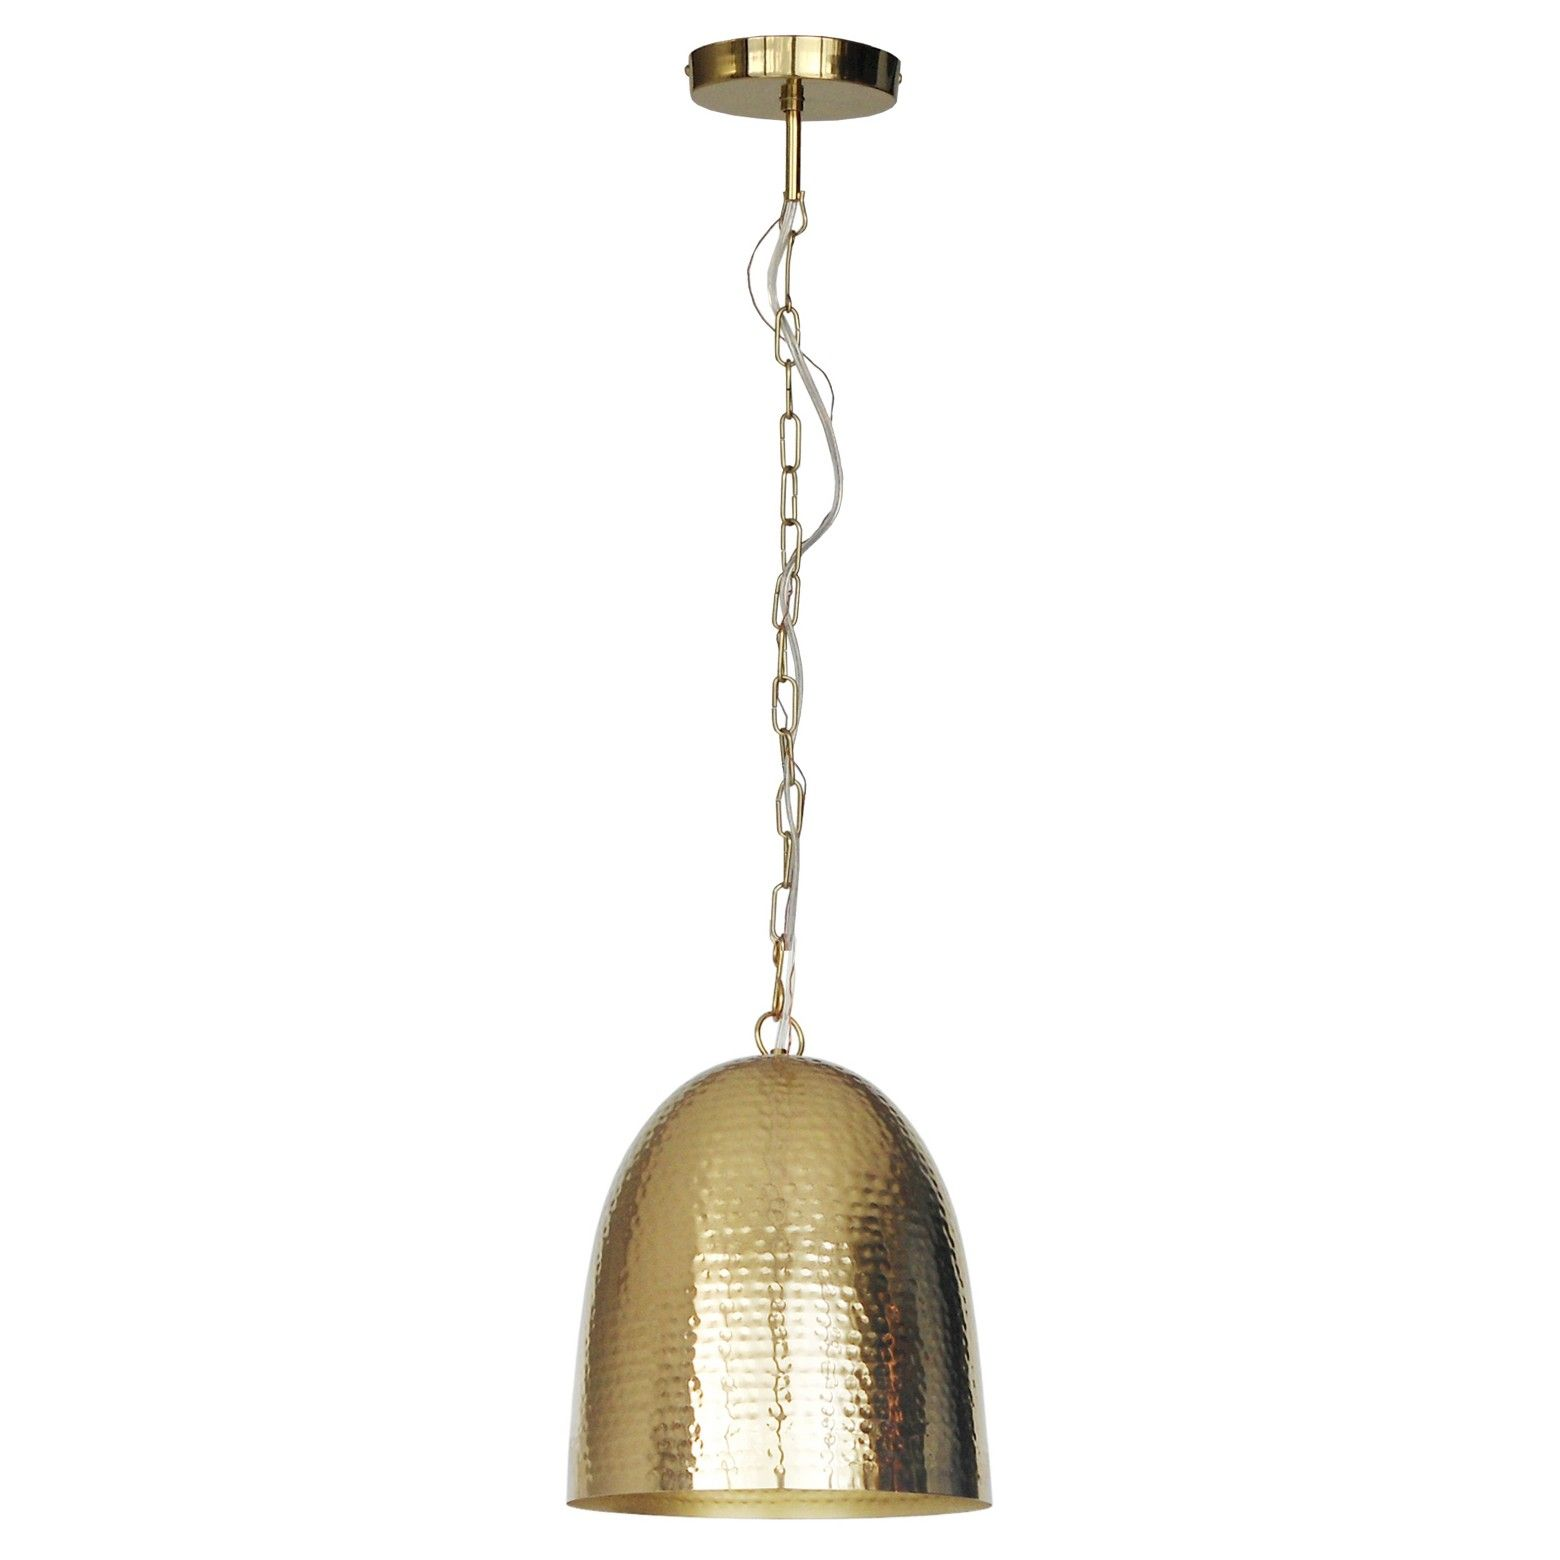 The Threshold Dome Hammered Metal Pendant Light Offers Lighting With A Global Feel This Ceiling Light Has An A Pendant Light Metal Pendant Light Metal Pendant